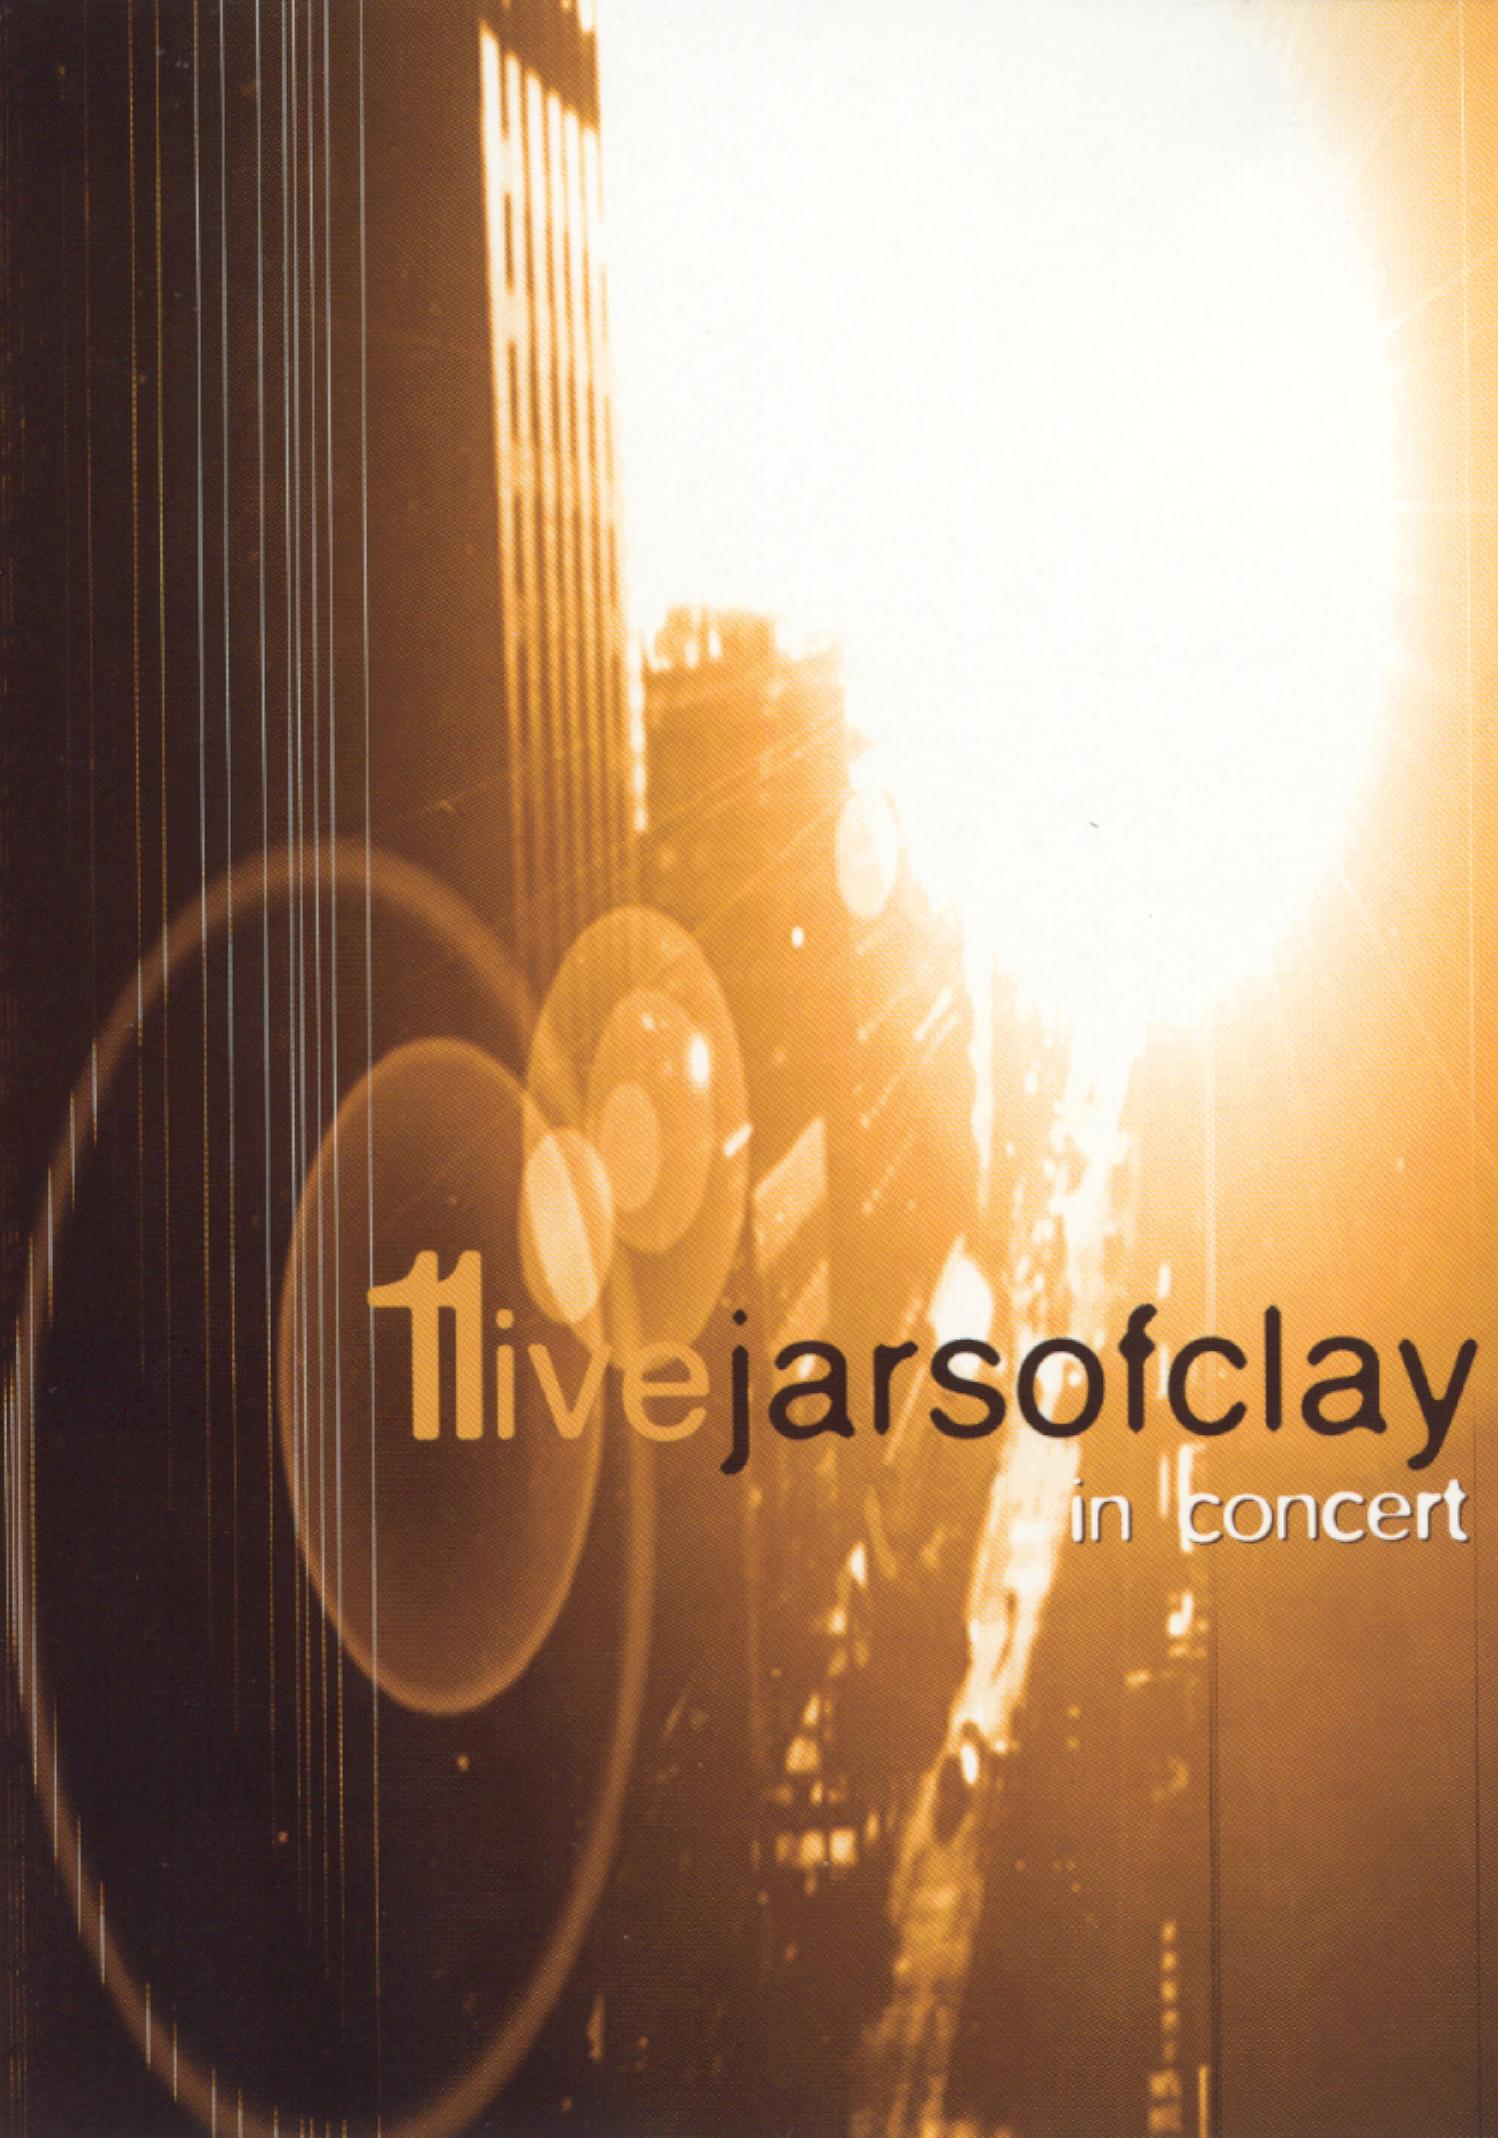 Jars of Clay: 11 Live - Jars of Clay in Concert